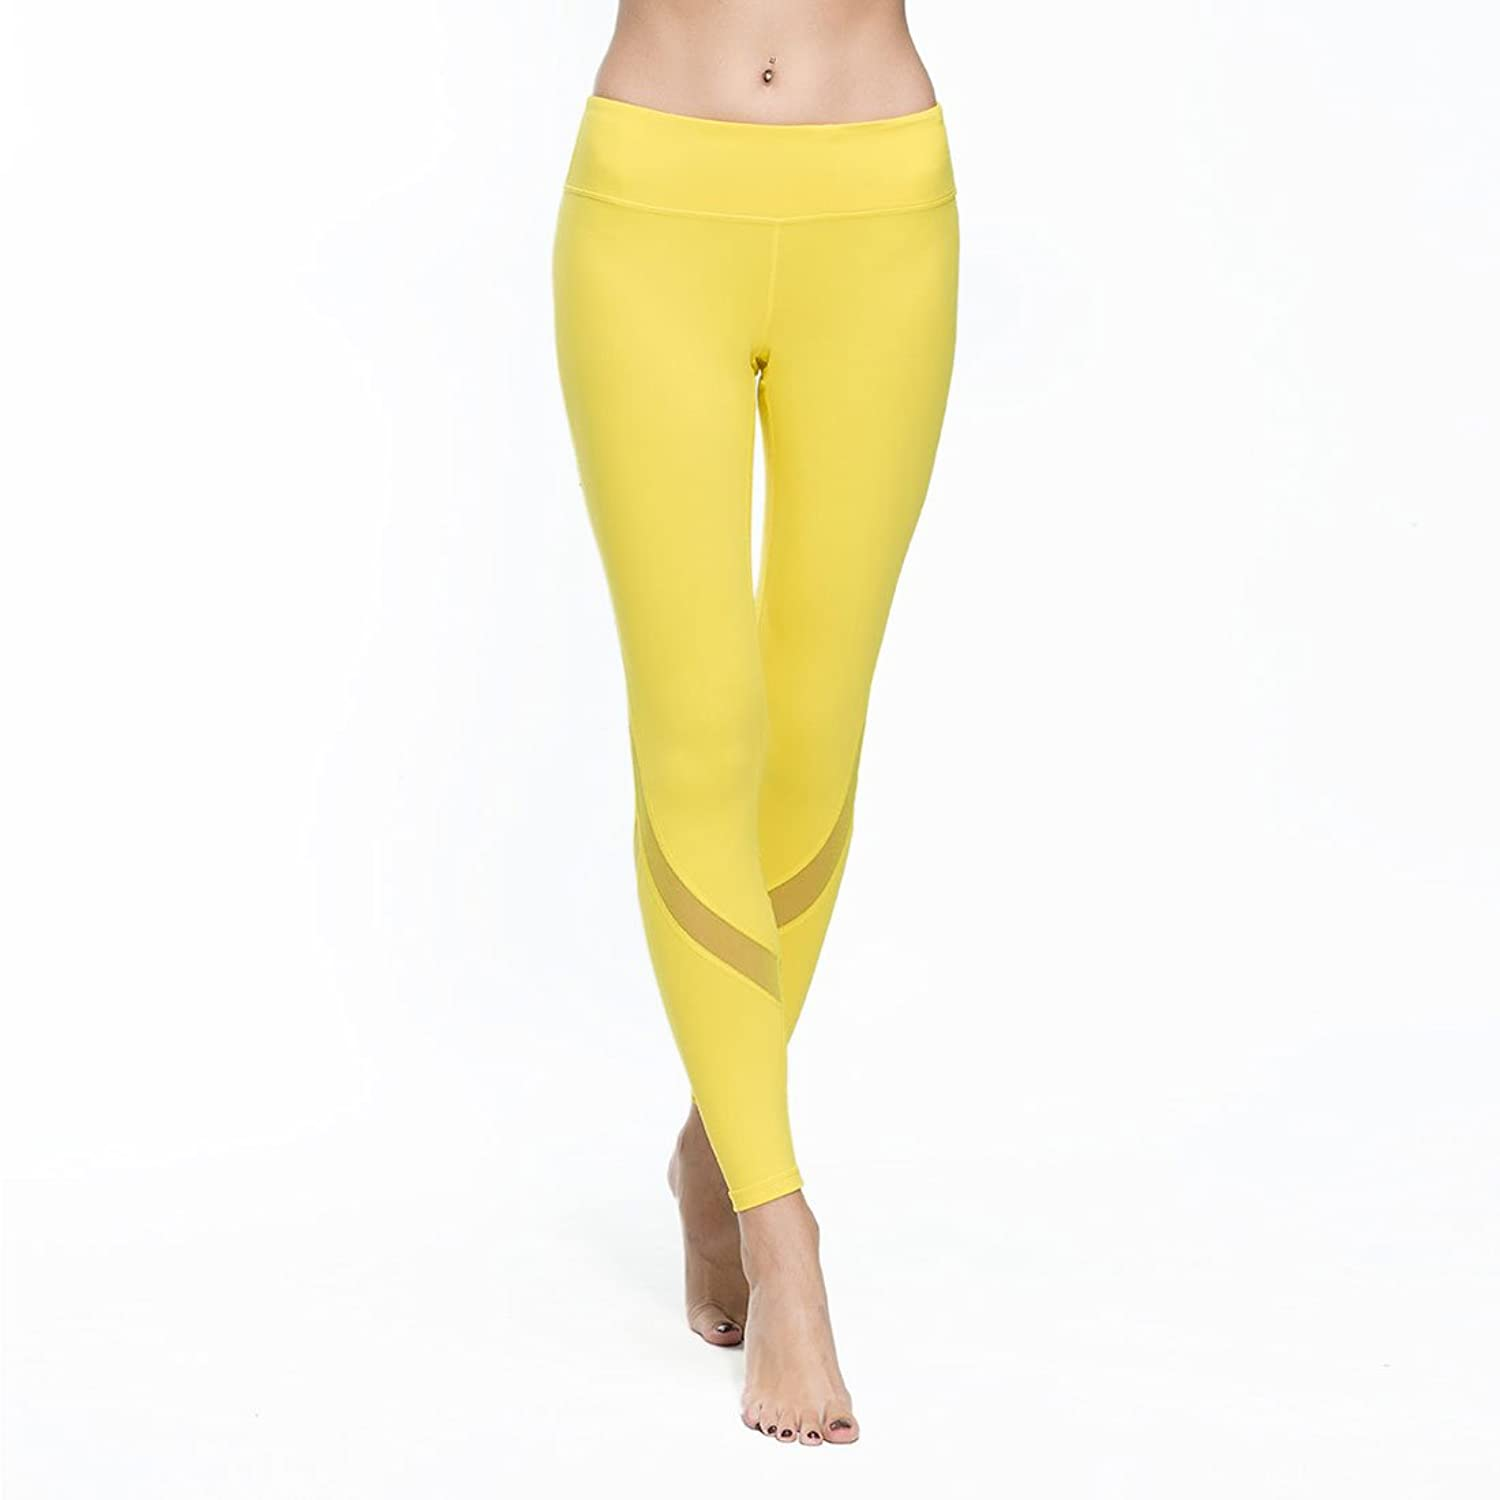 3c1d0433dc1ea ... Pants Mesh Workout Leggings w Inner Pocket Tights Yoga Capri. Wholesale  Price:17.99 - $21.99 87% Nylon 13% Spandex:Quick-Dry,Sweat-wicking,  Breathable, ...